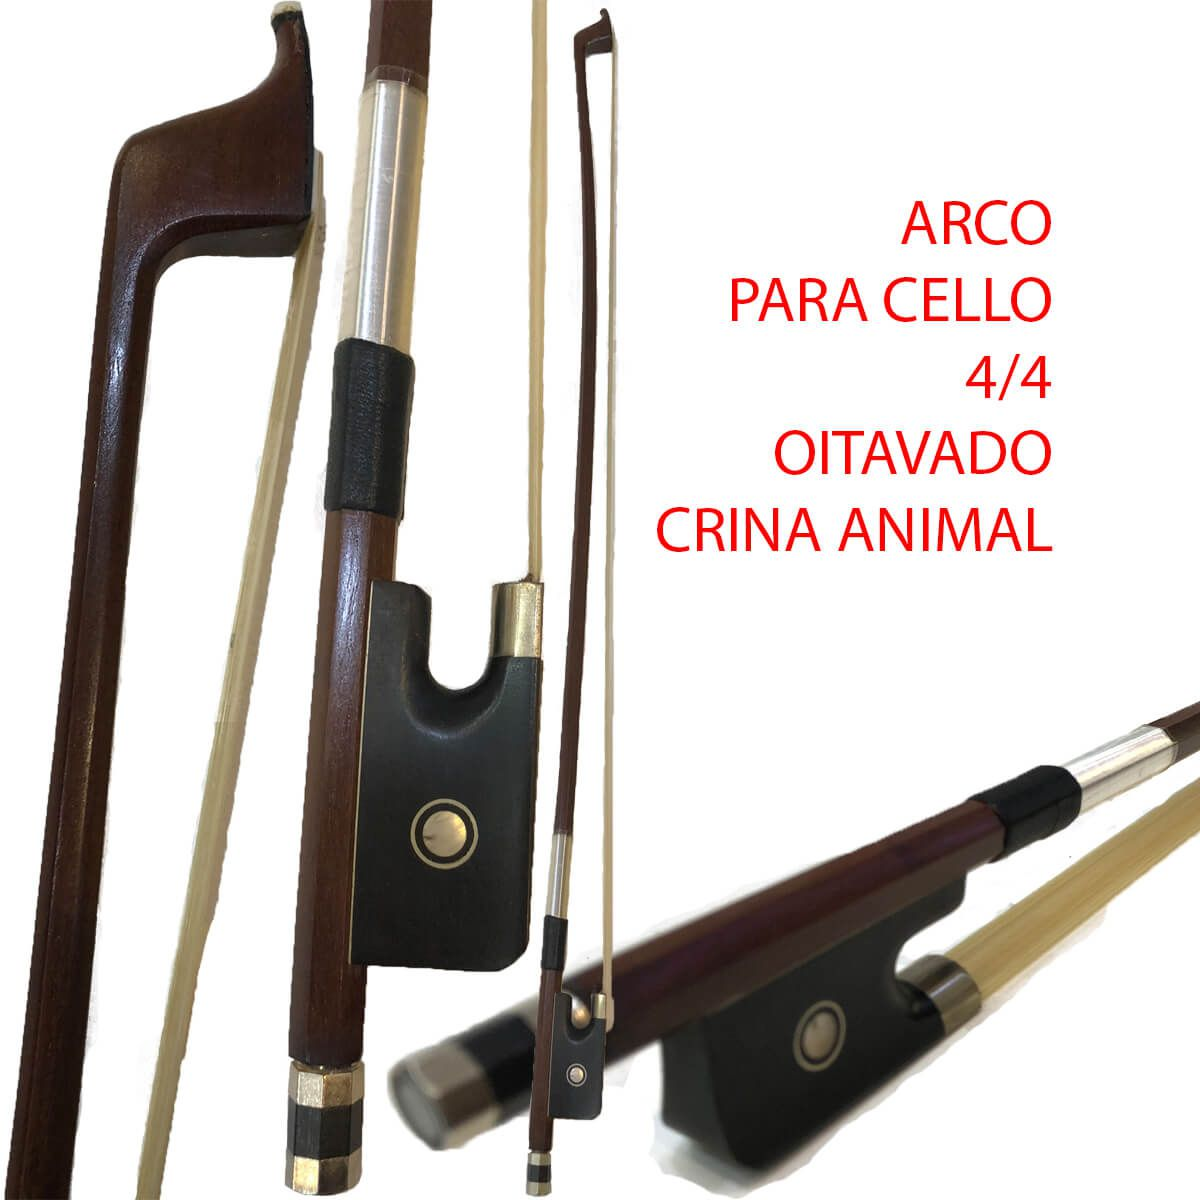 Arco Para Cello - Crina Animal - Oitavado